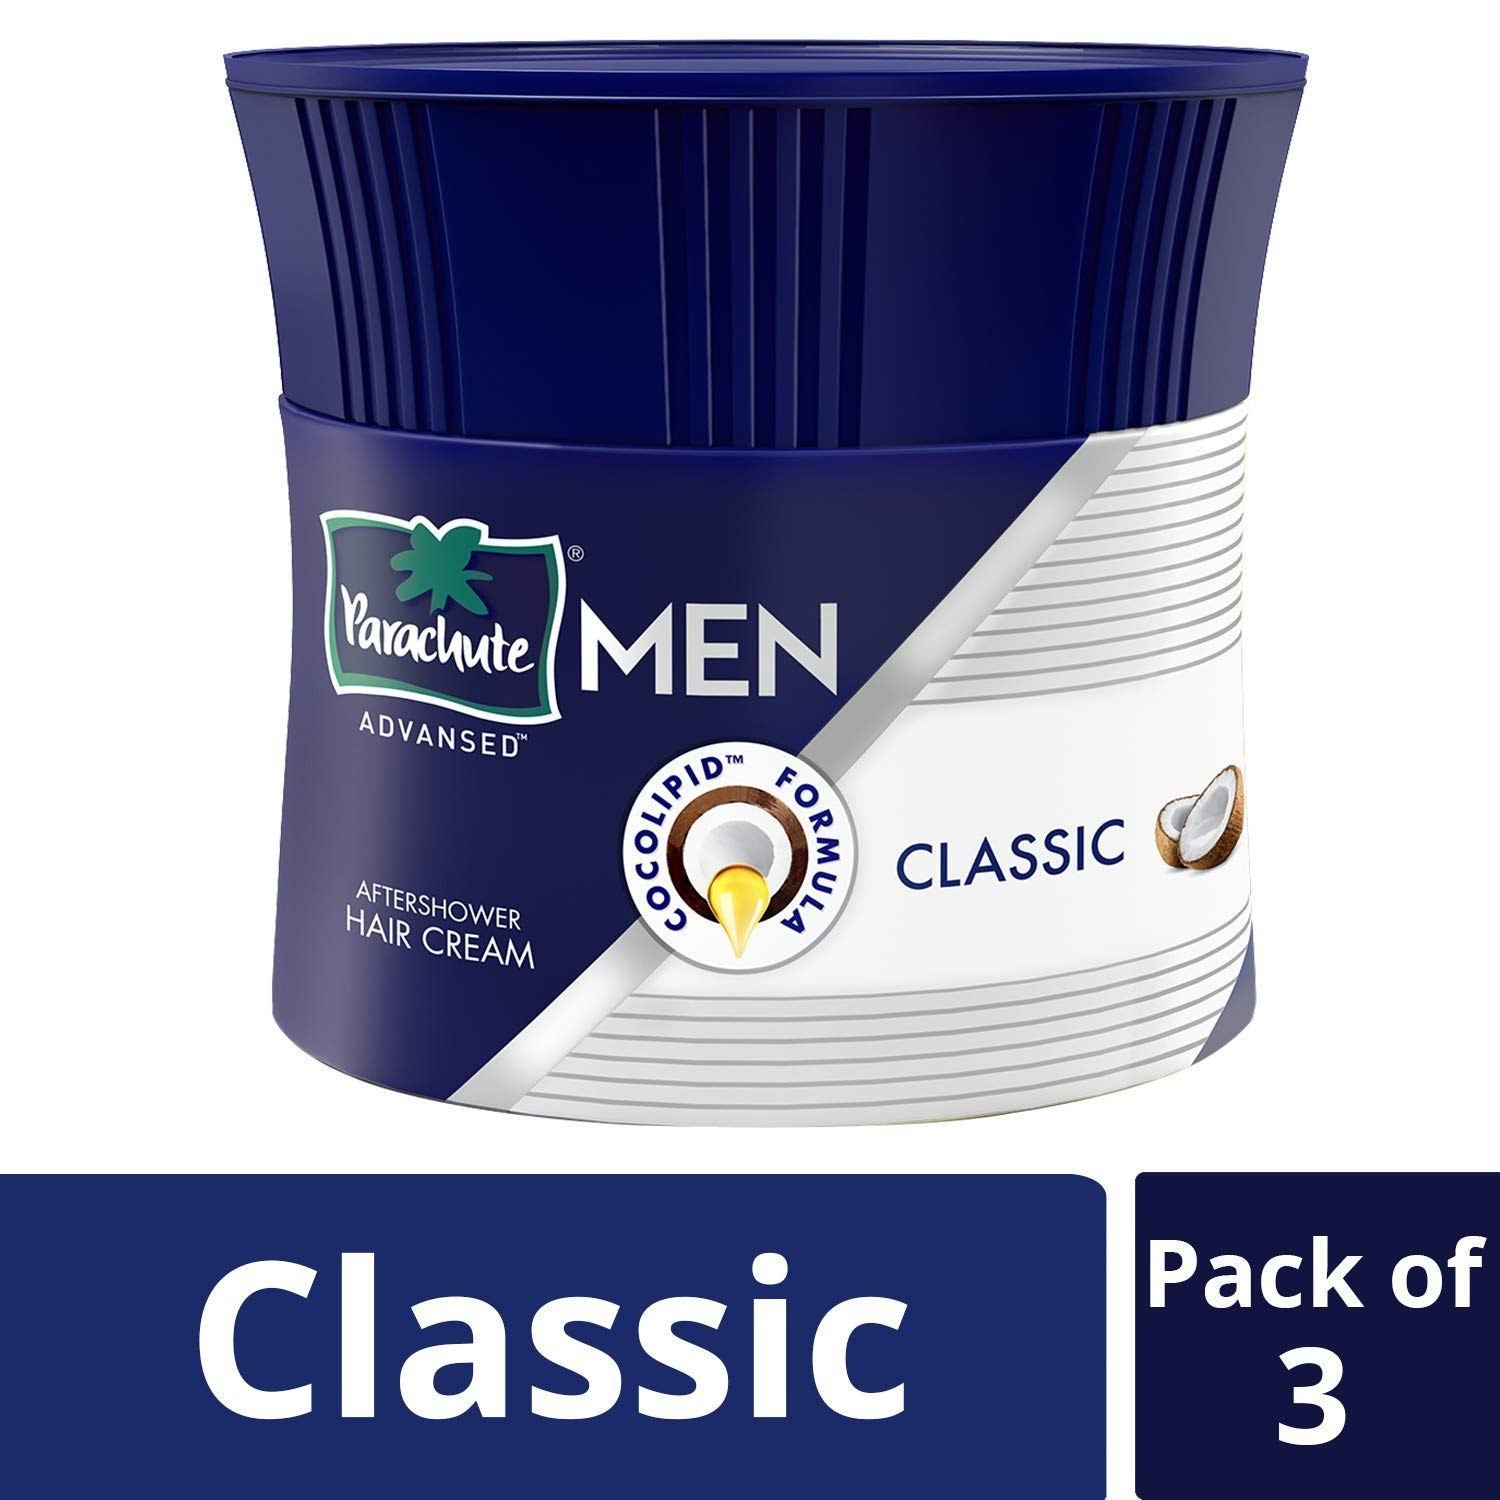 Parachute Advansed Men Hair Cream, Classic, 100 gm (Pack of 3)